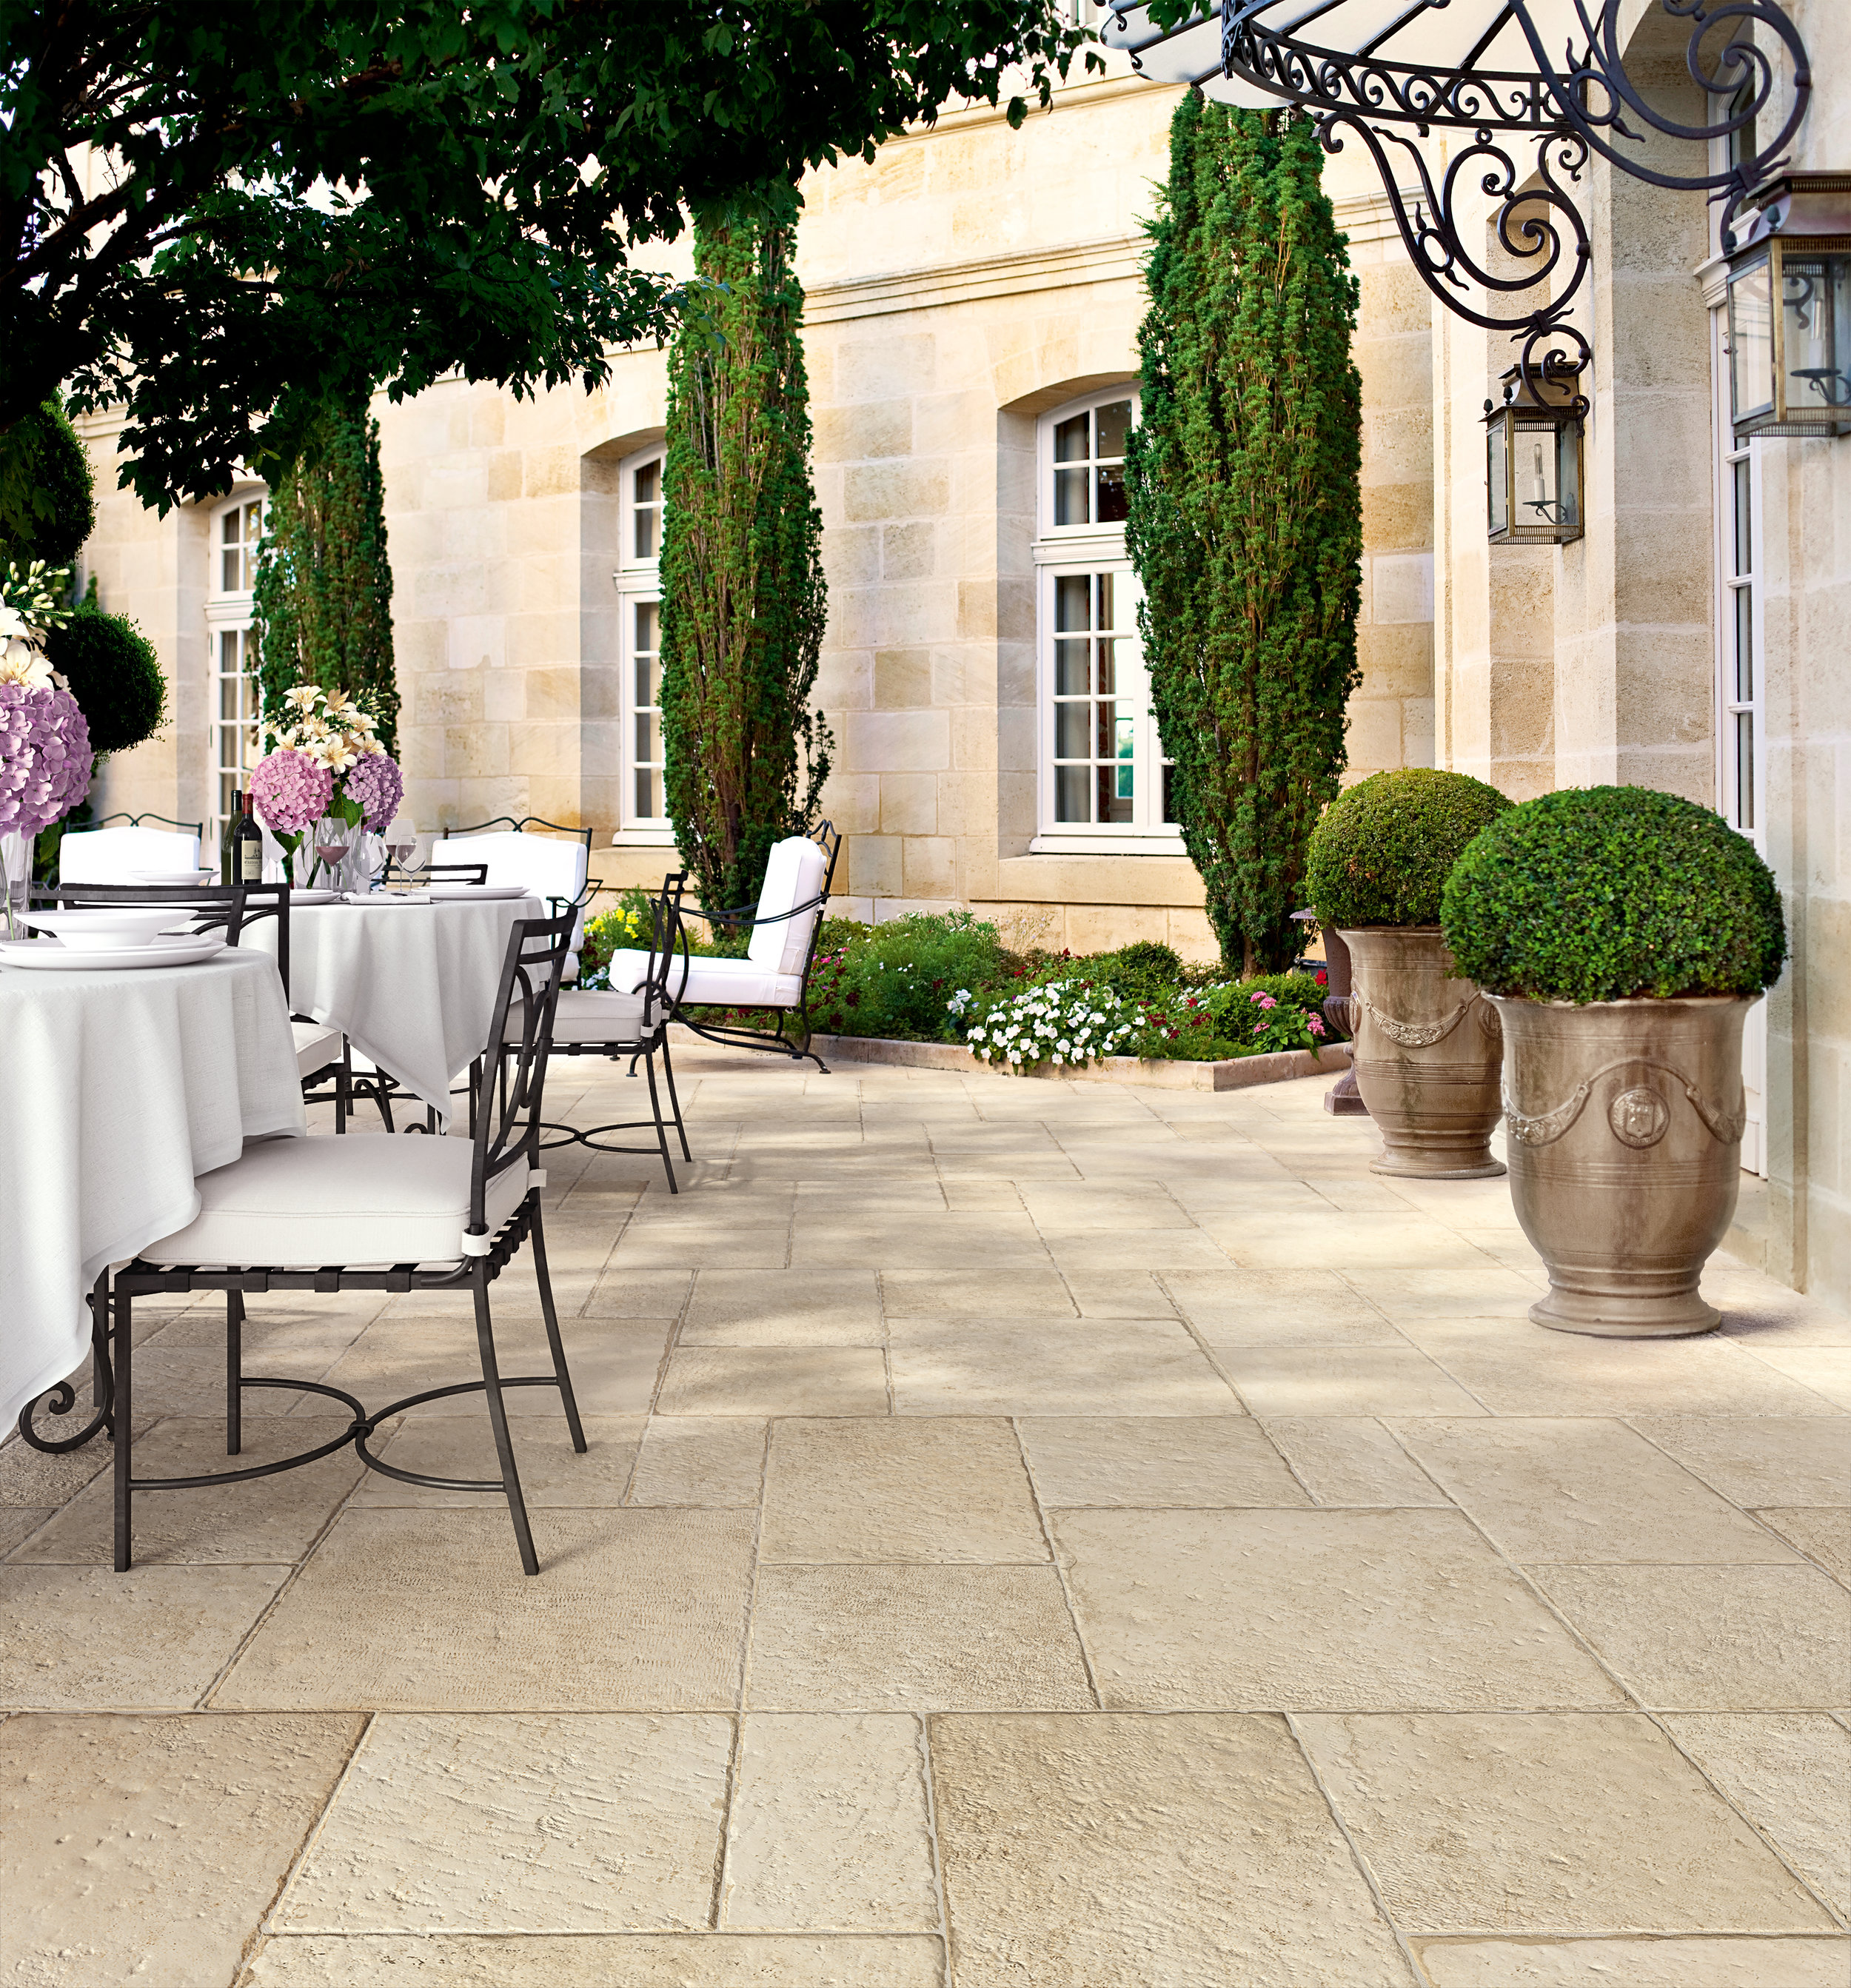 BLU-chateauroyal-amboise-naturale-10mm-outdoor-001.jpg